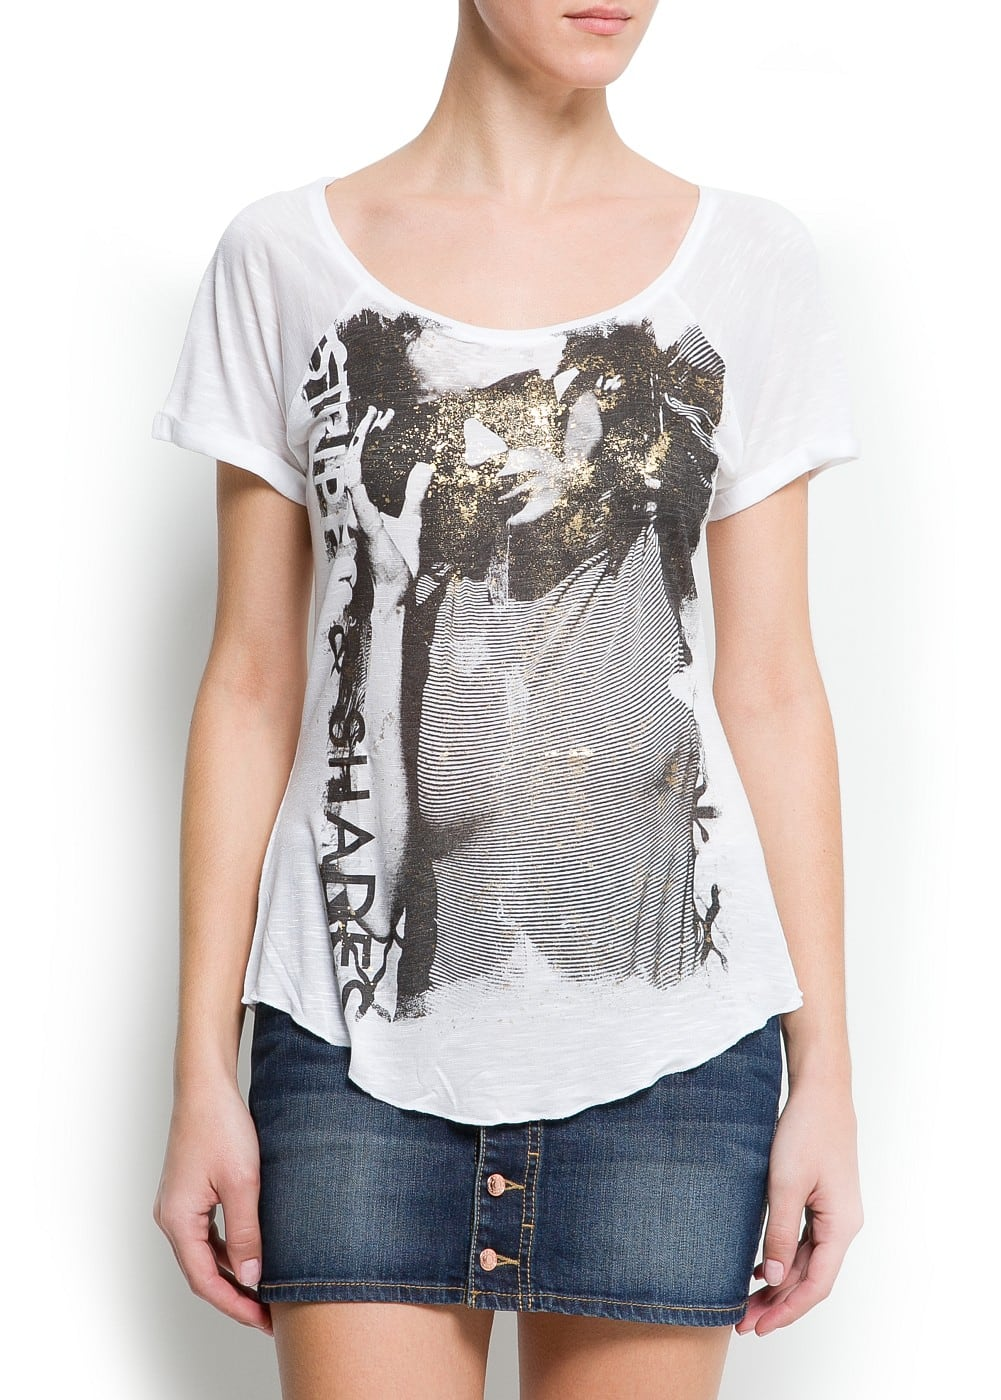 Metallic printed t-shirt